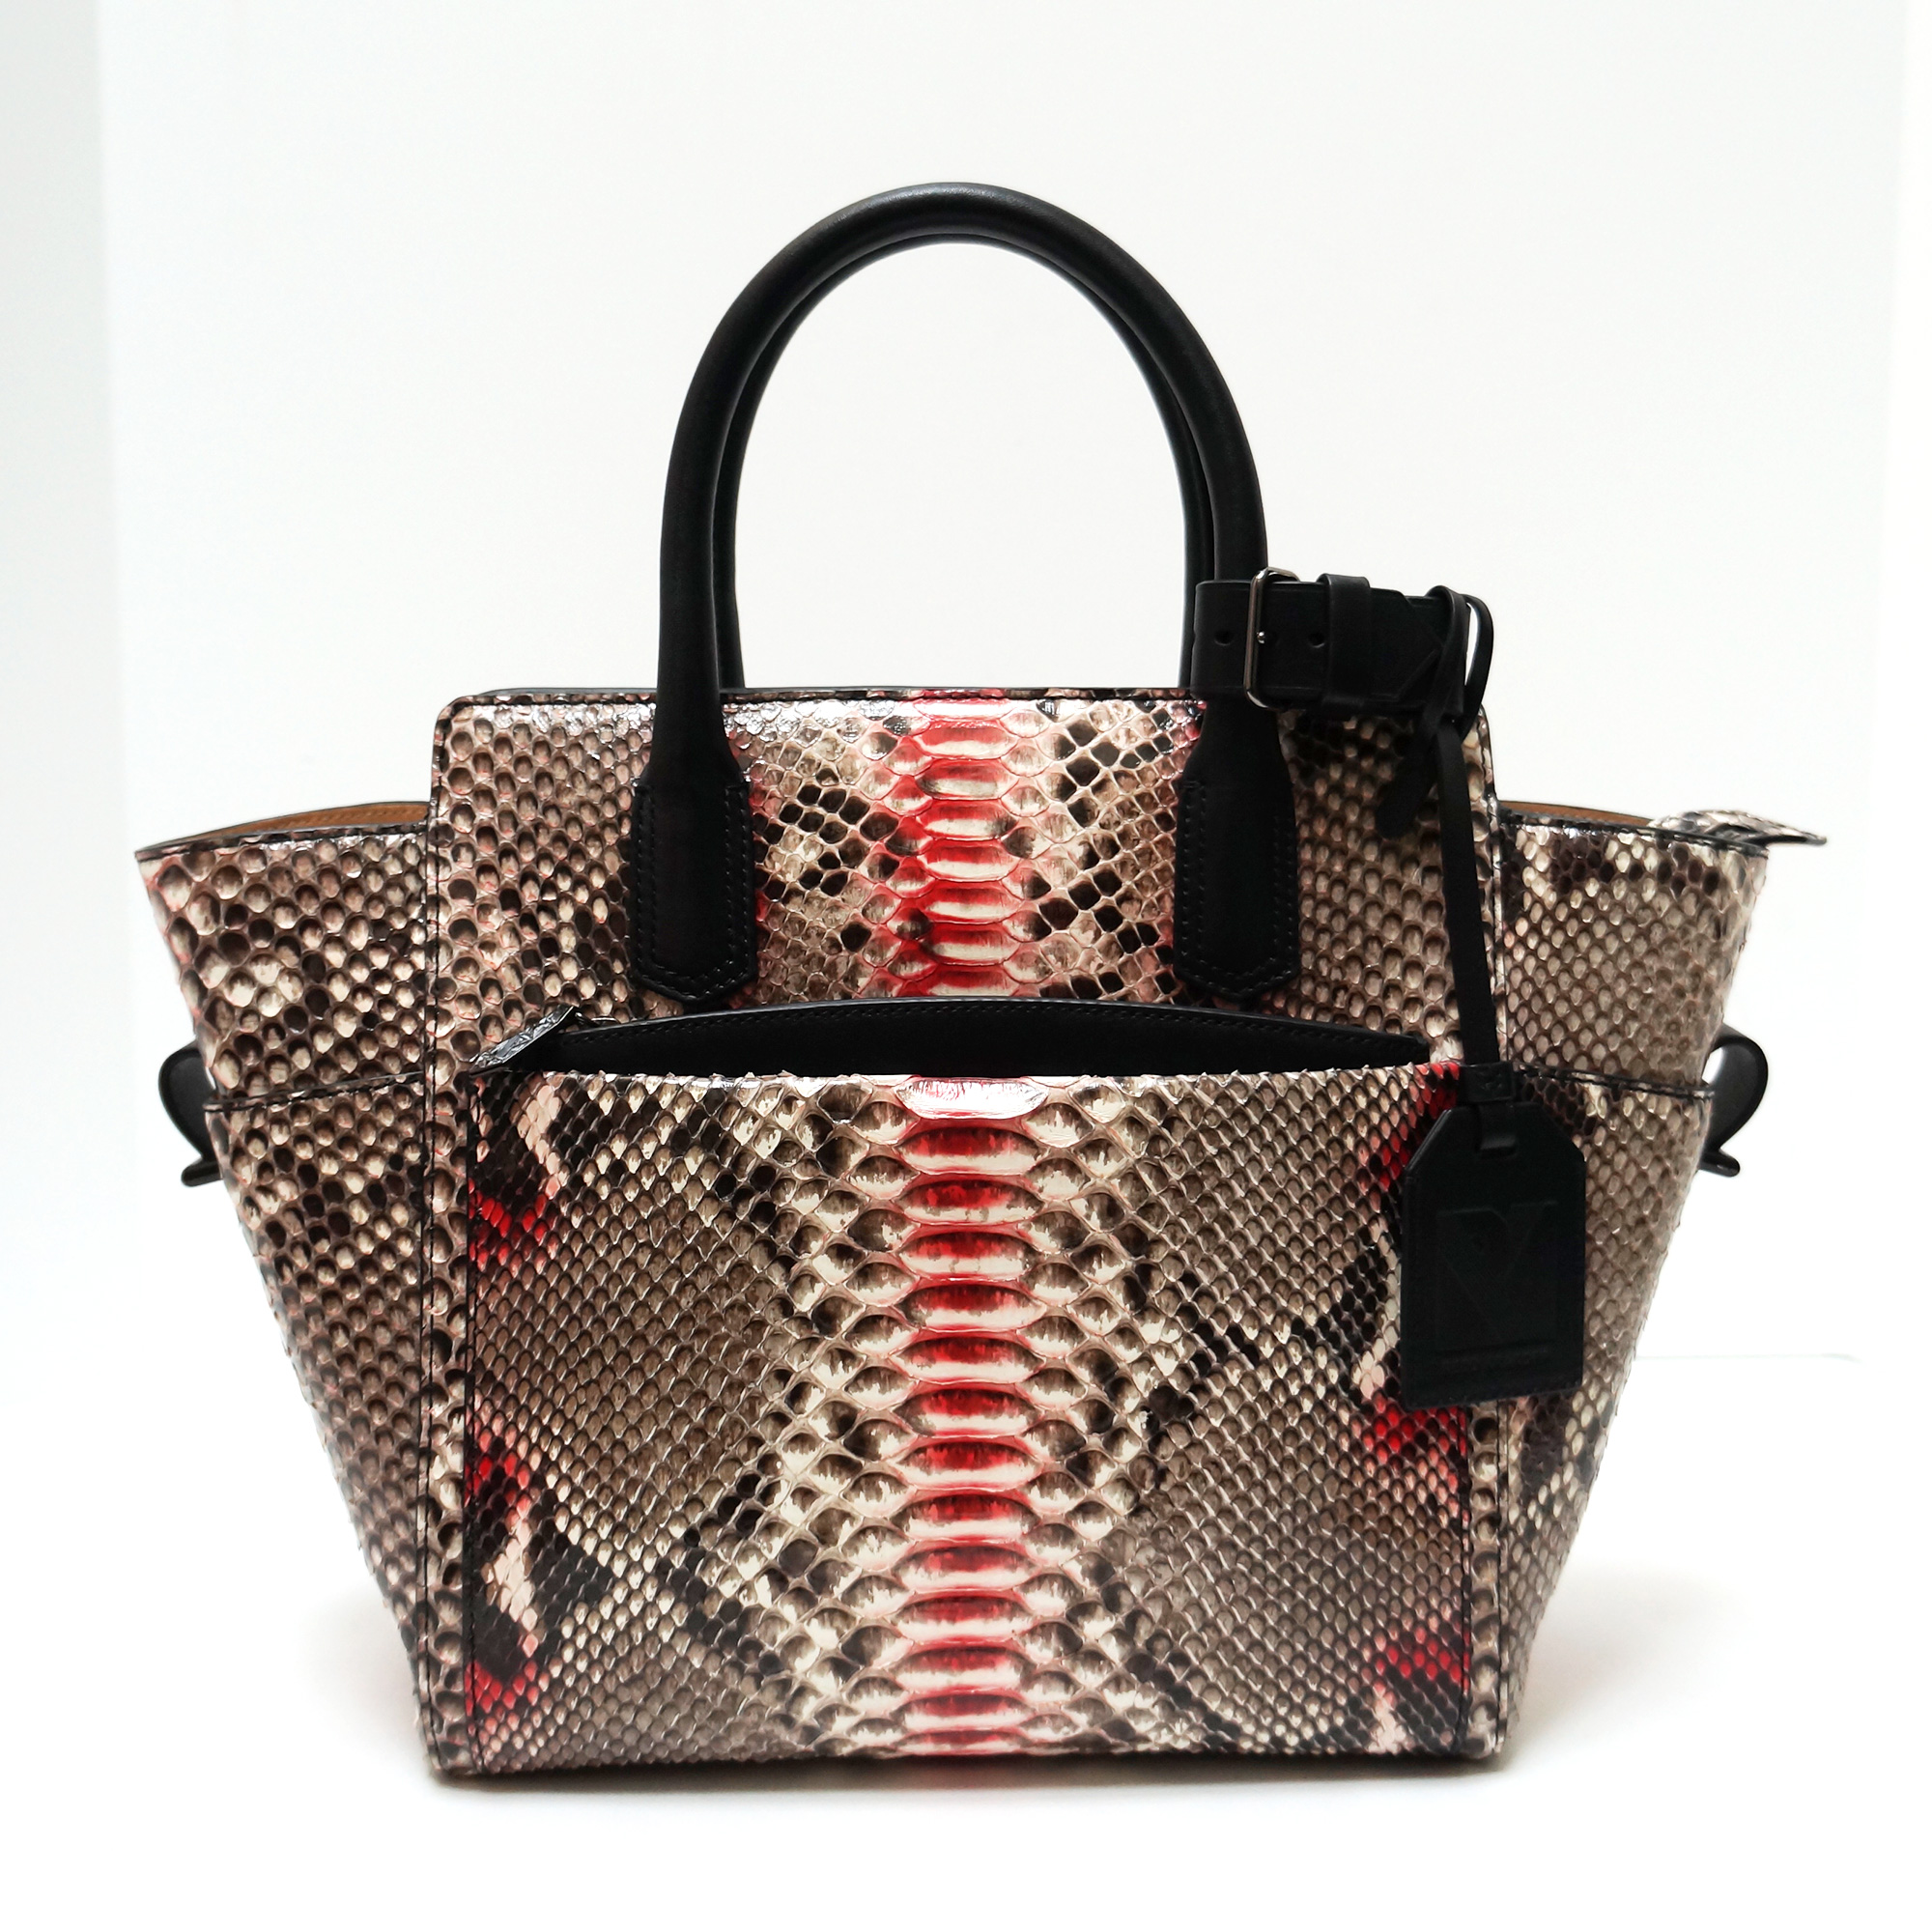 Reed Krakoff Atlantique Python Tote